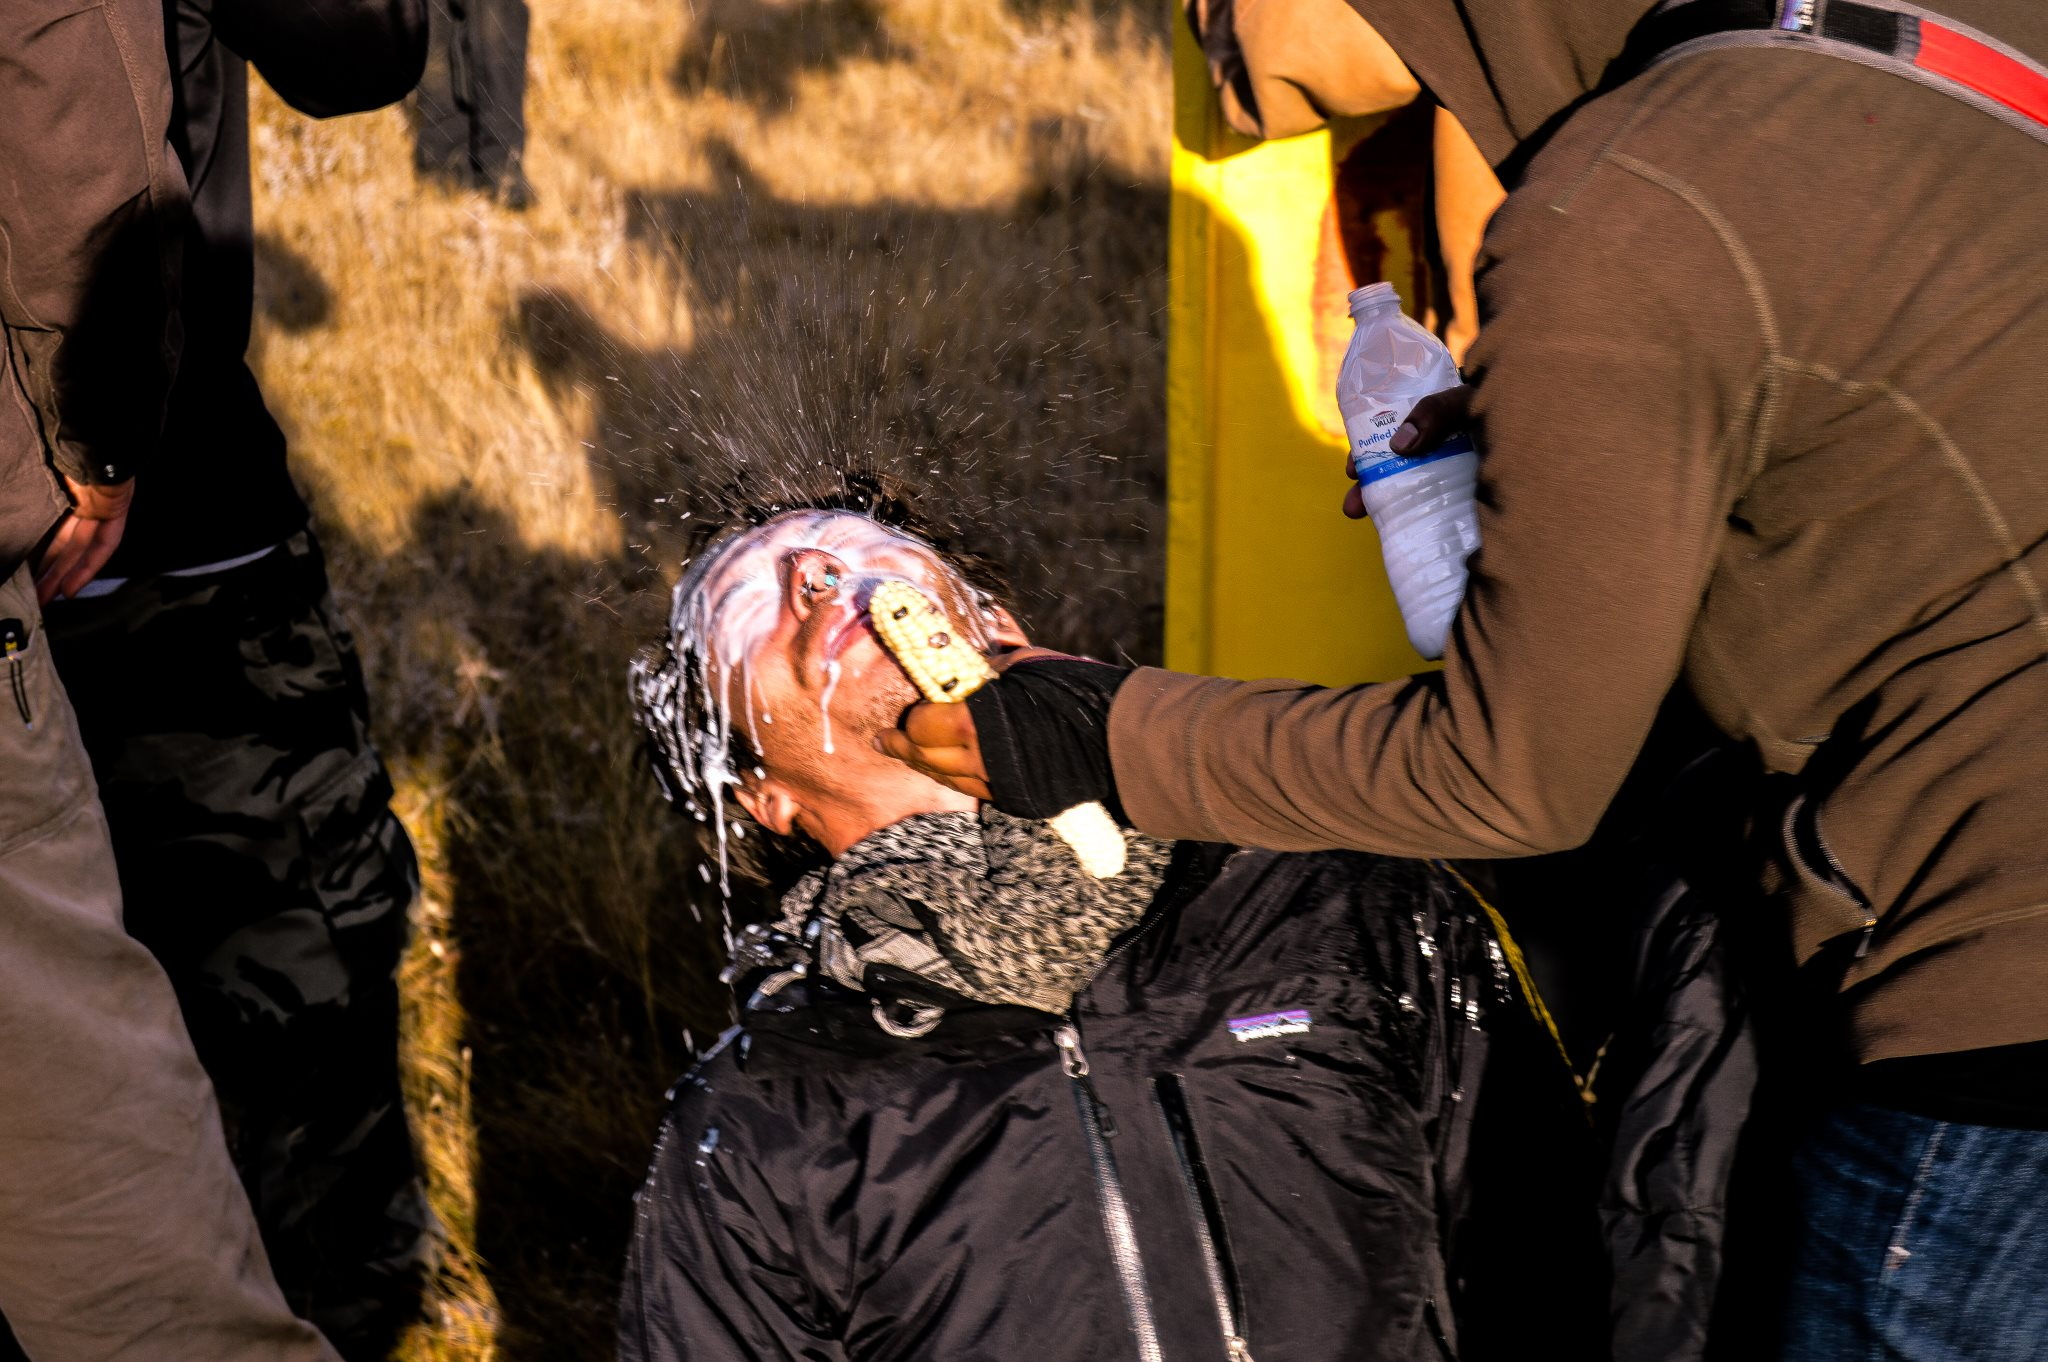 Democracy Now: New resistance camp and more arrests in fight against Dakota Access Pipeline